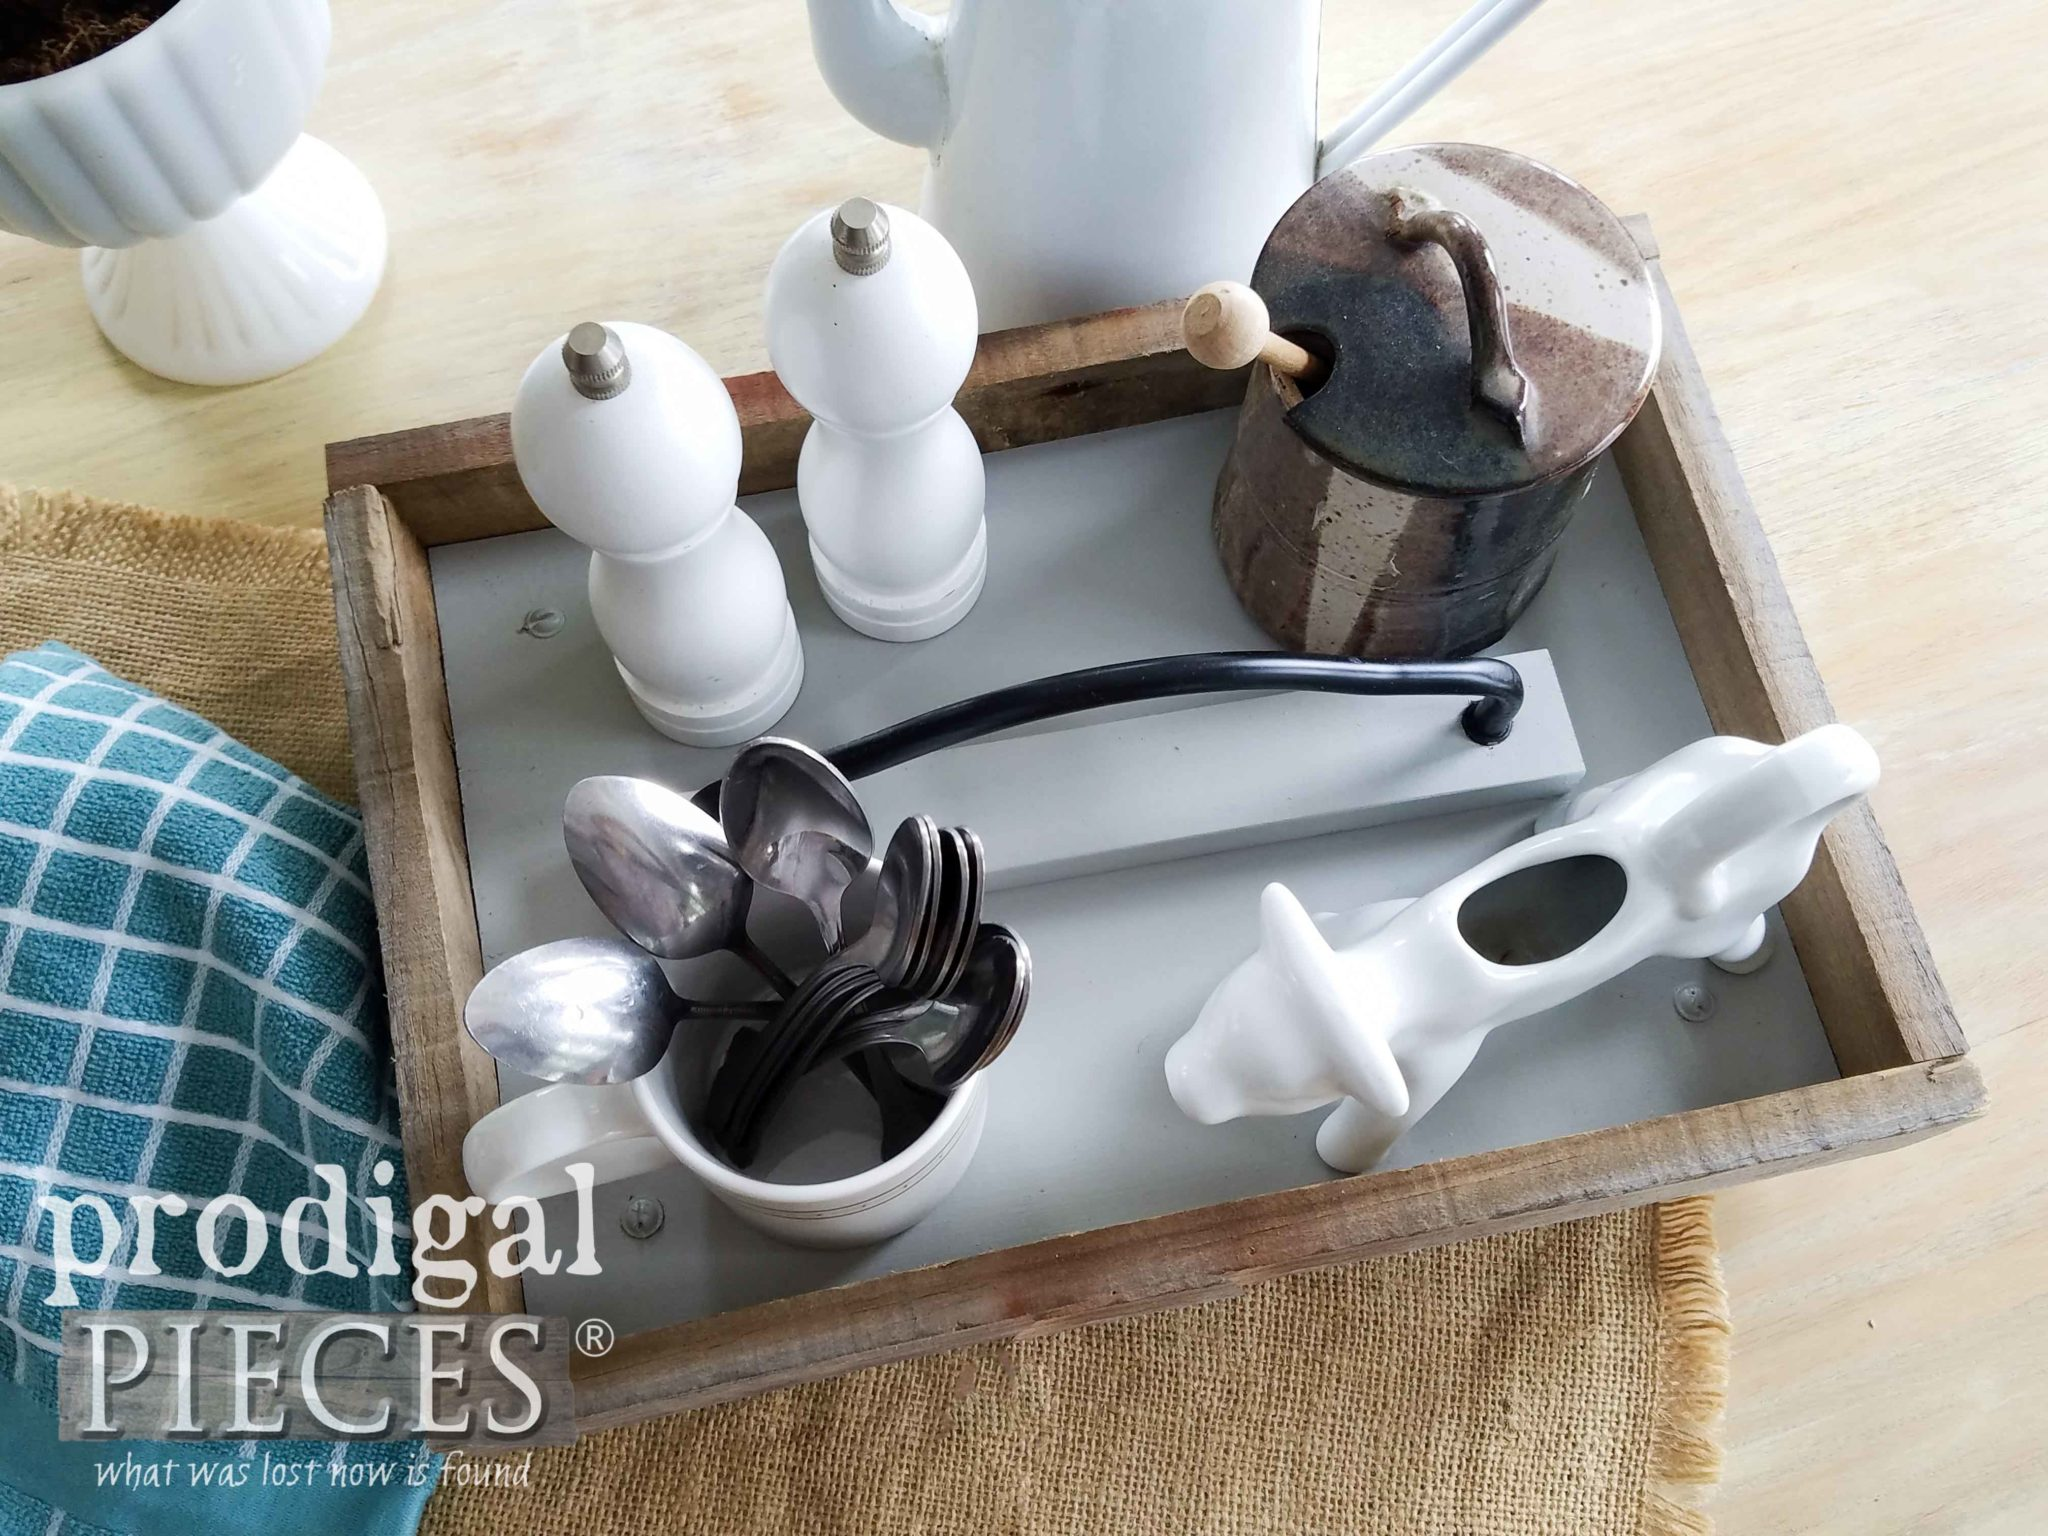 Farmhouse Barn Wood Tray for Centerpiece, Toiletries, Kitchen Decor by Larissa of Prodigal Pieces | prodigalpieces.com